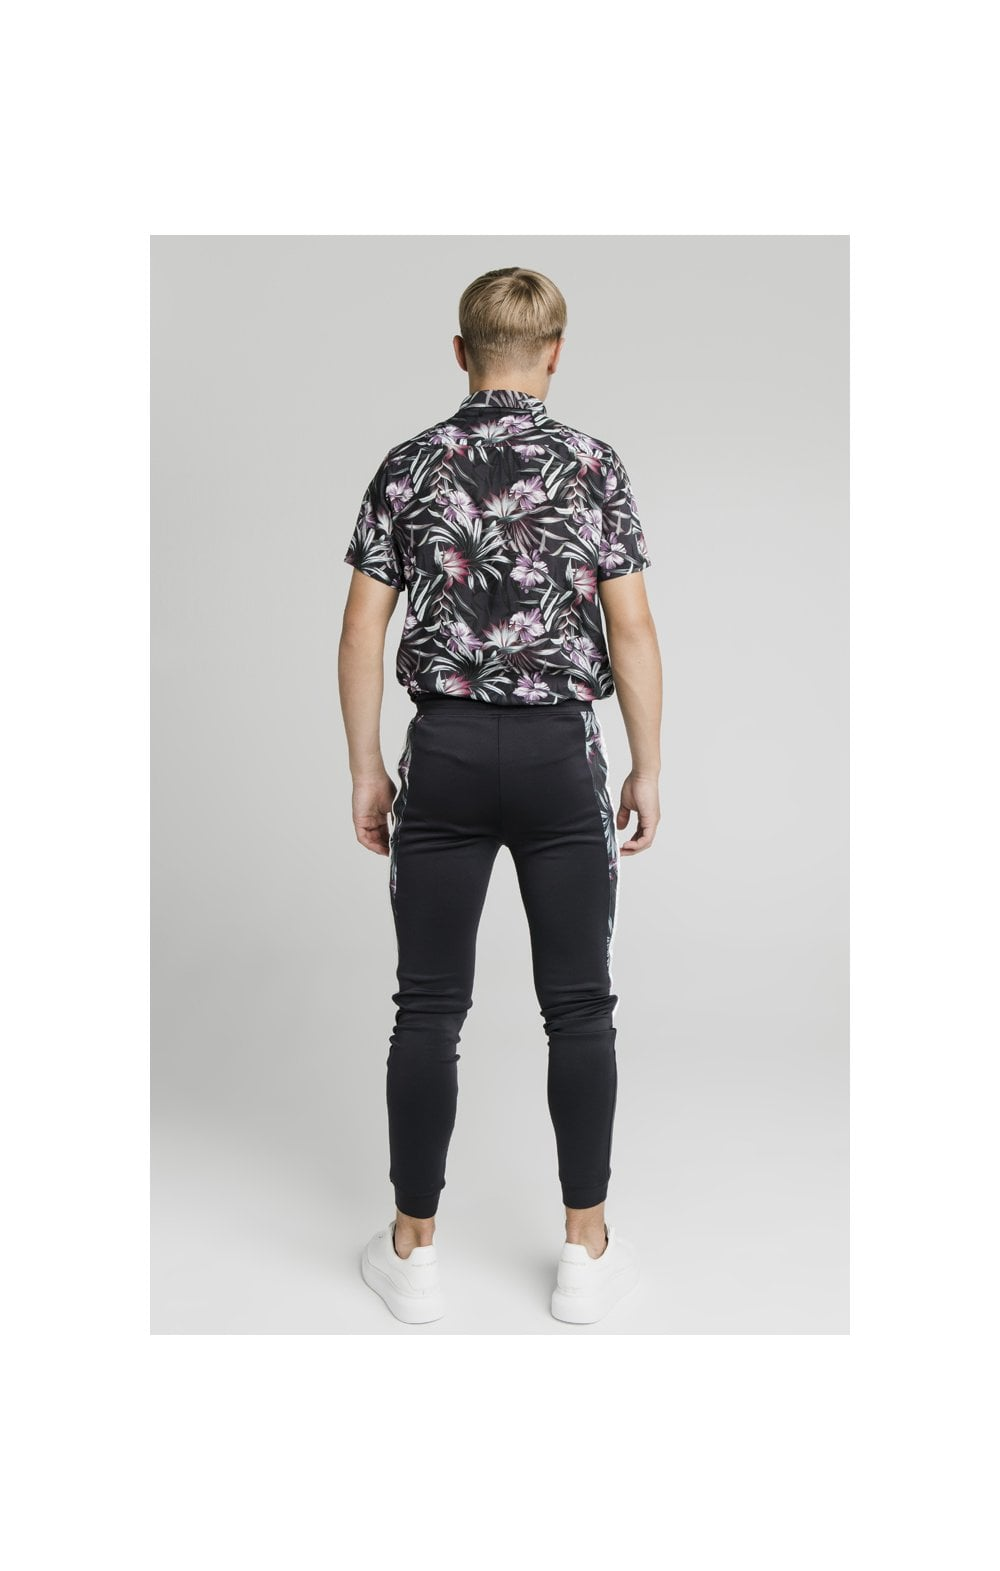 Illusive London Dark Tropical Tape Pants - Navy (7)